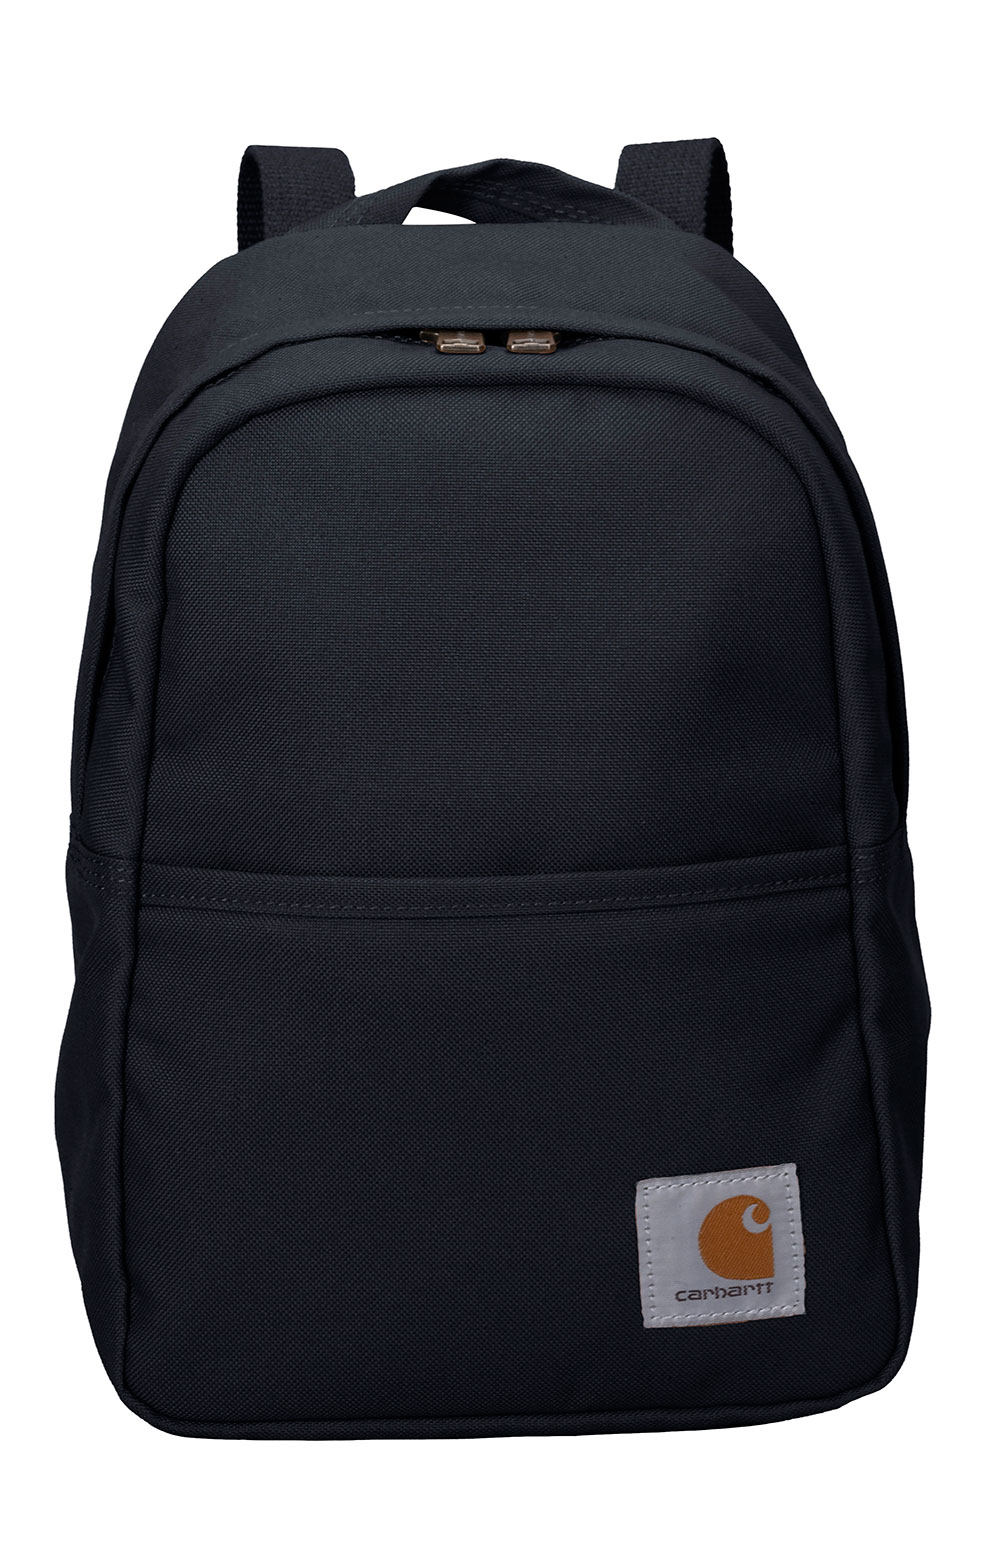 Mini Backpack - Black 2